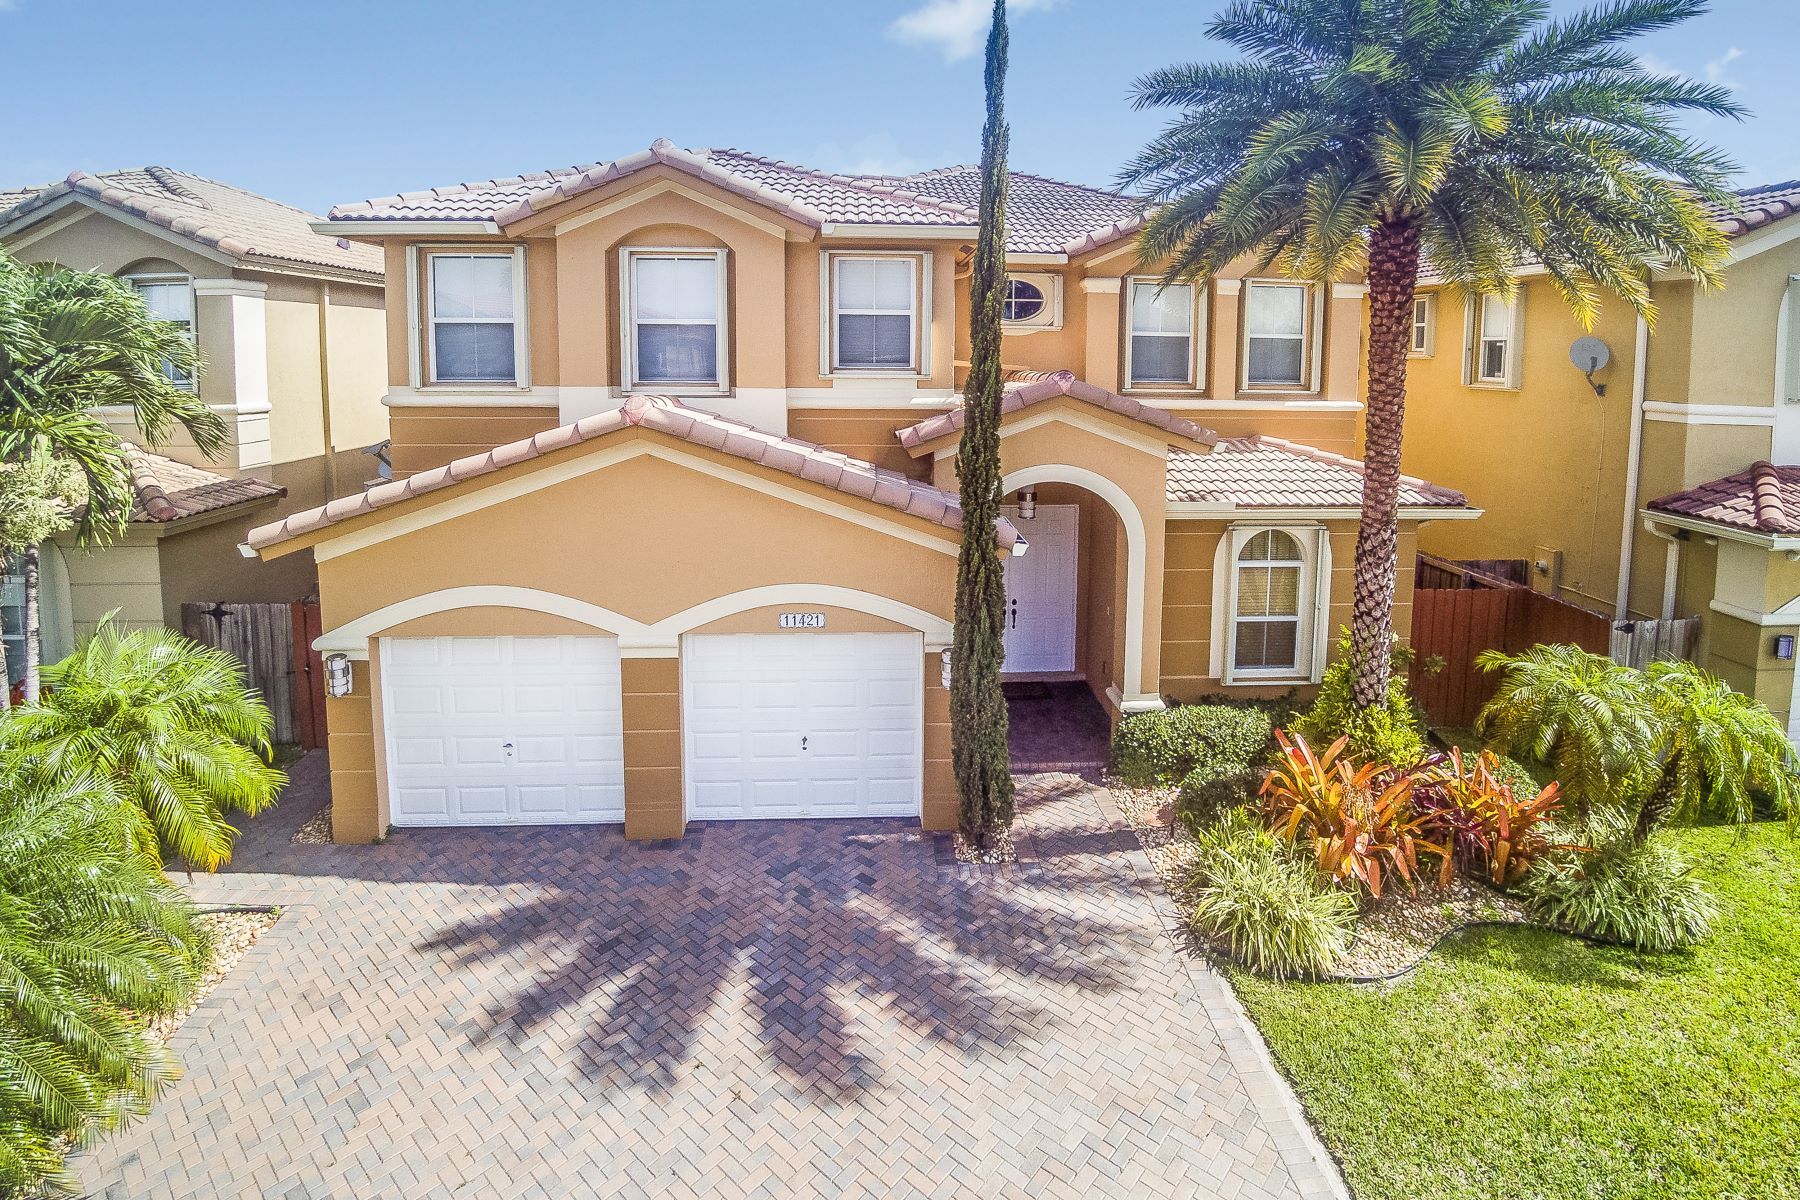 Single Family Home for Sale at 11421 Nw 82nd Ter Doral, Florida 33178 United States